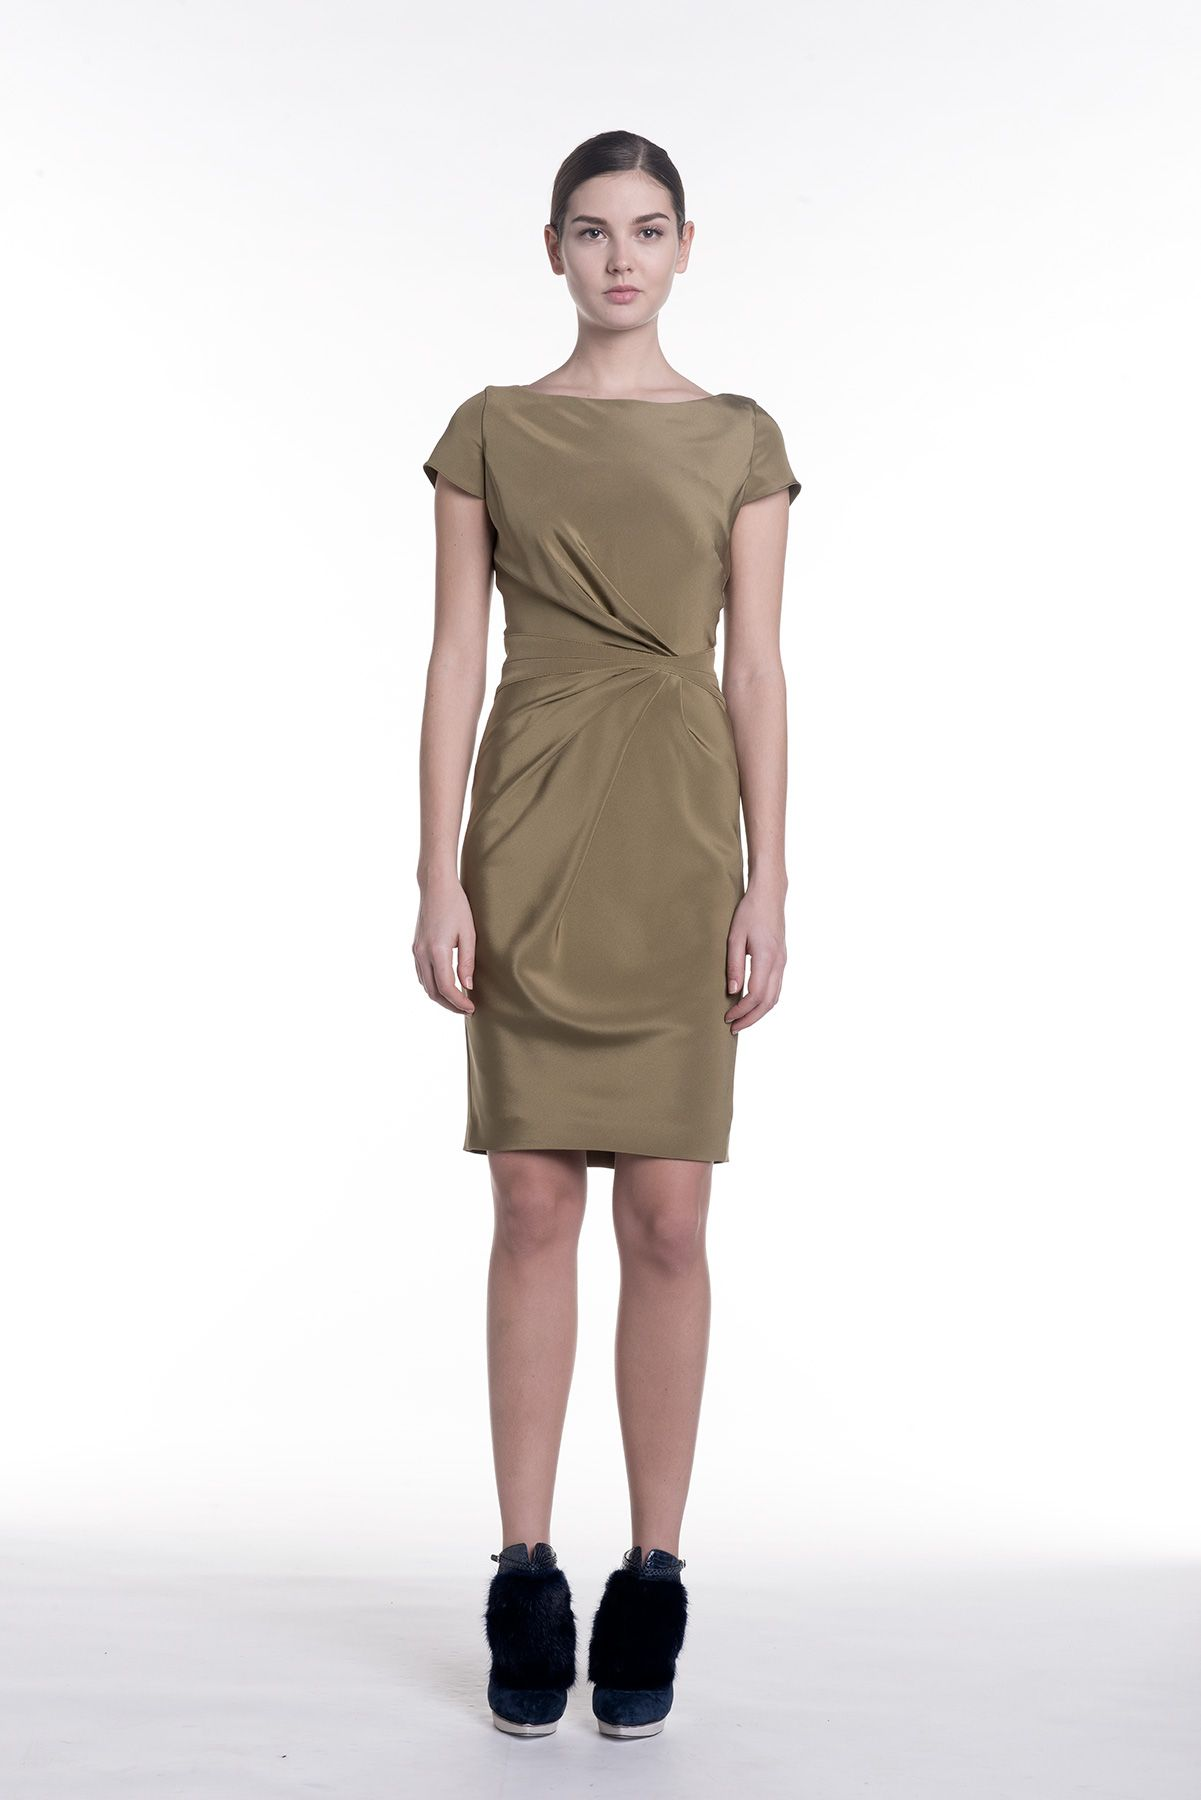 Azzaro Pre Fall Winter 2013/2014 : OSMANE dress #azzaro